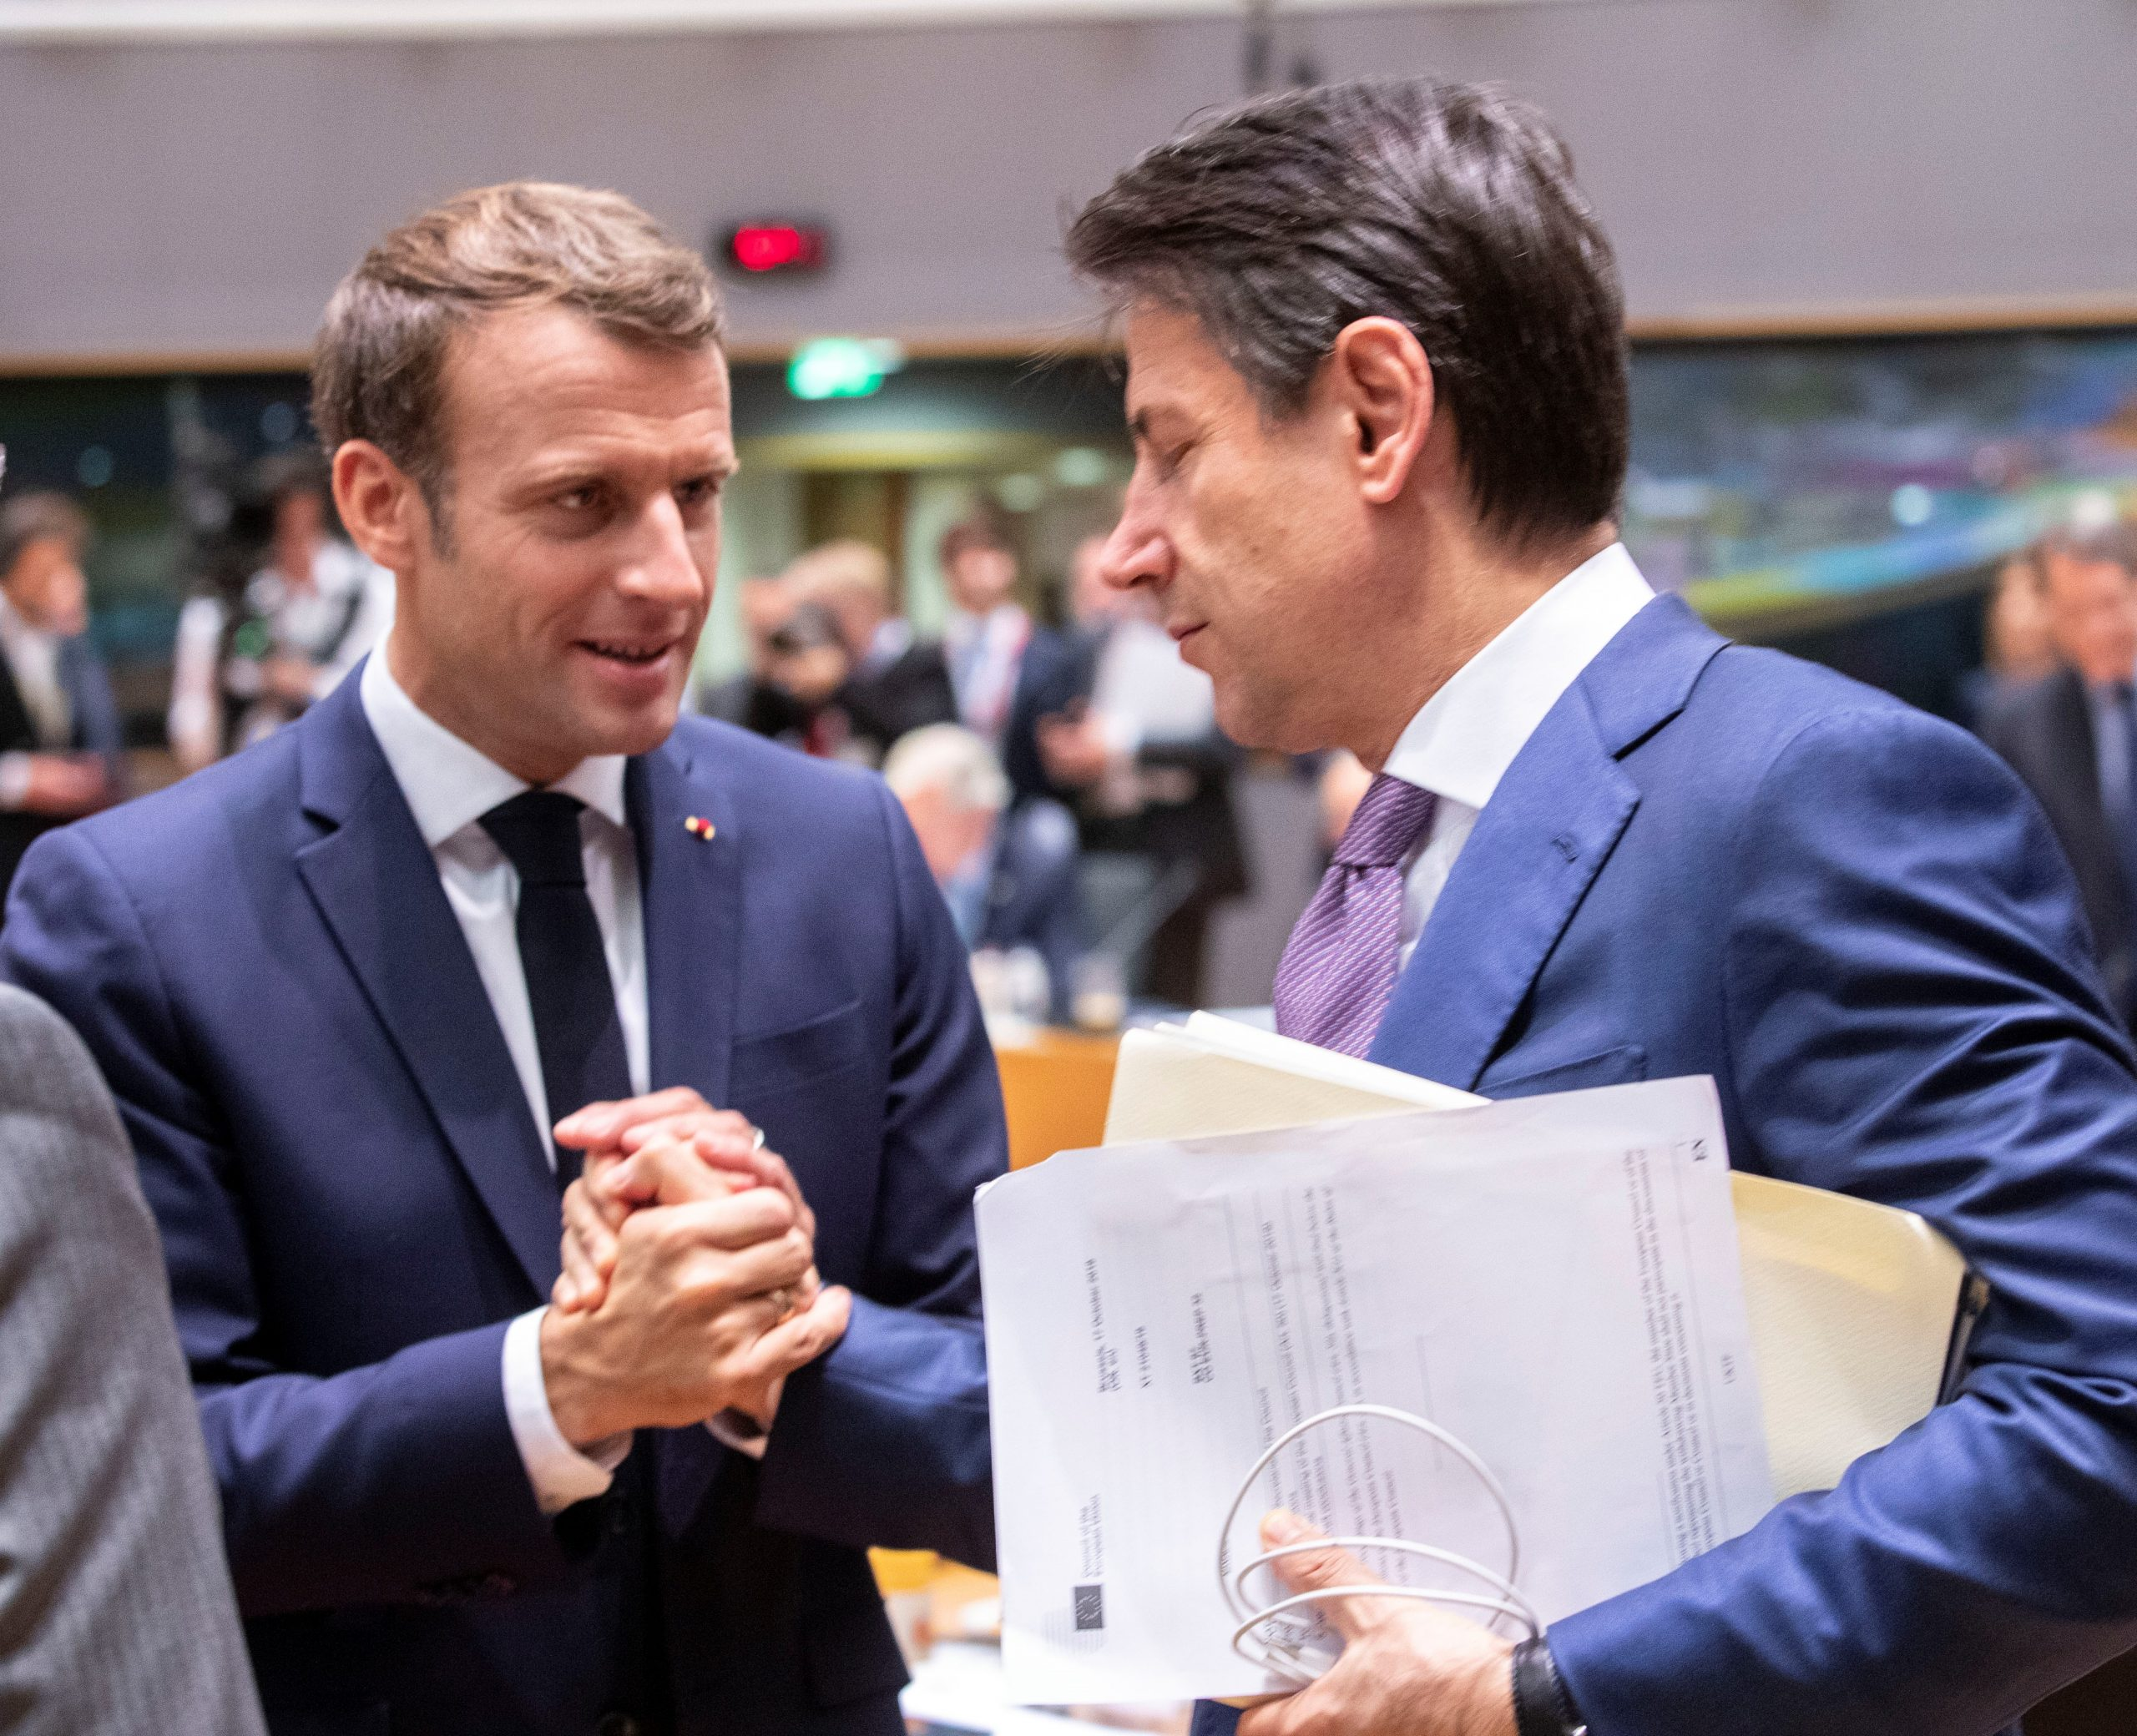 France and Italy: Is it the momentum for a new European path?